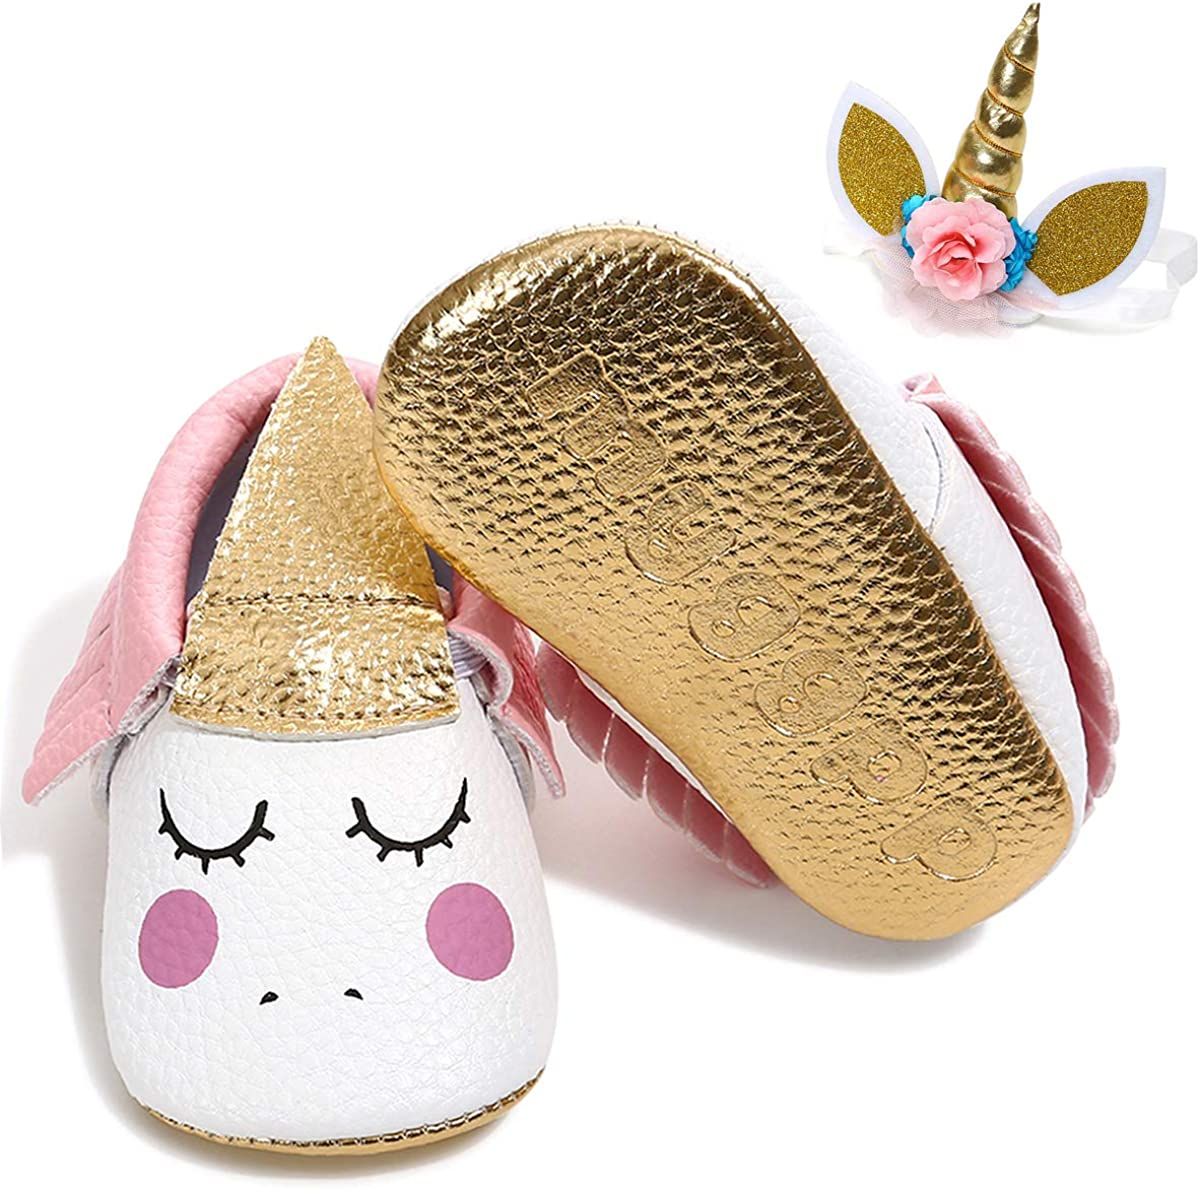 LiveBeauty Newborn Baby Girl Shoes,Soft Toddler Mary Jane Party Crib Shoes with Headband